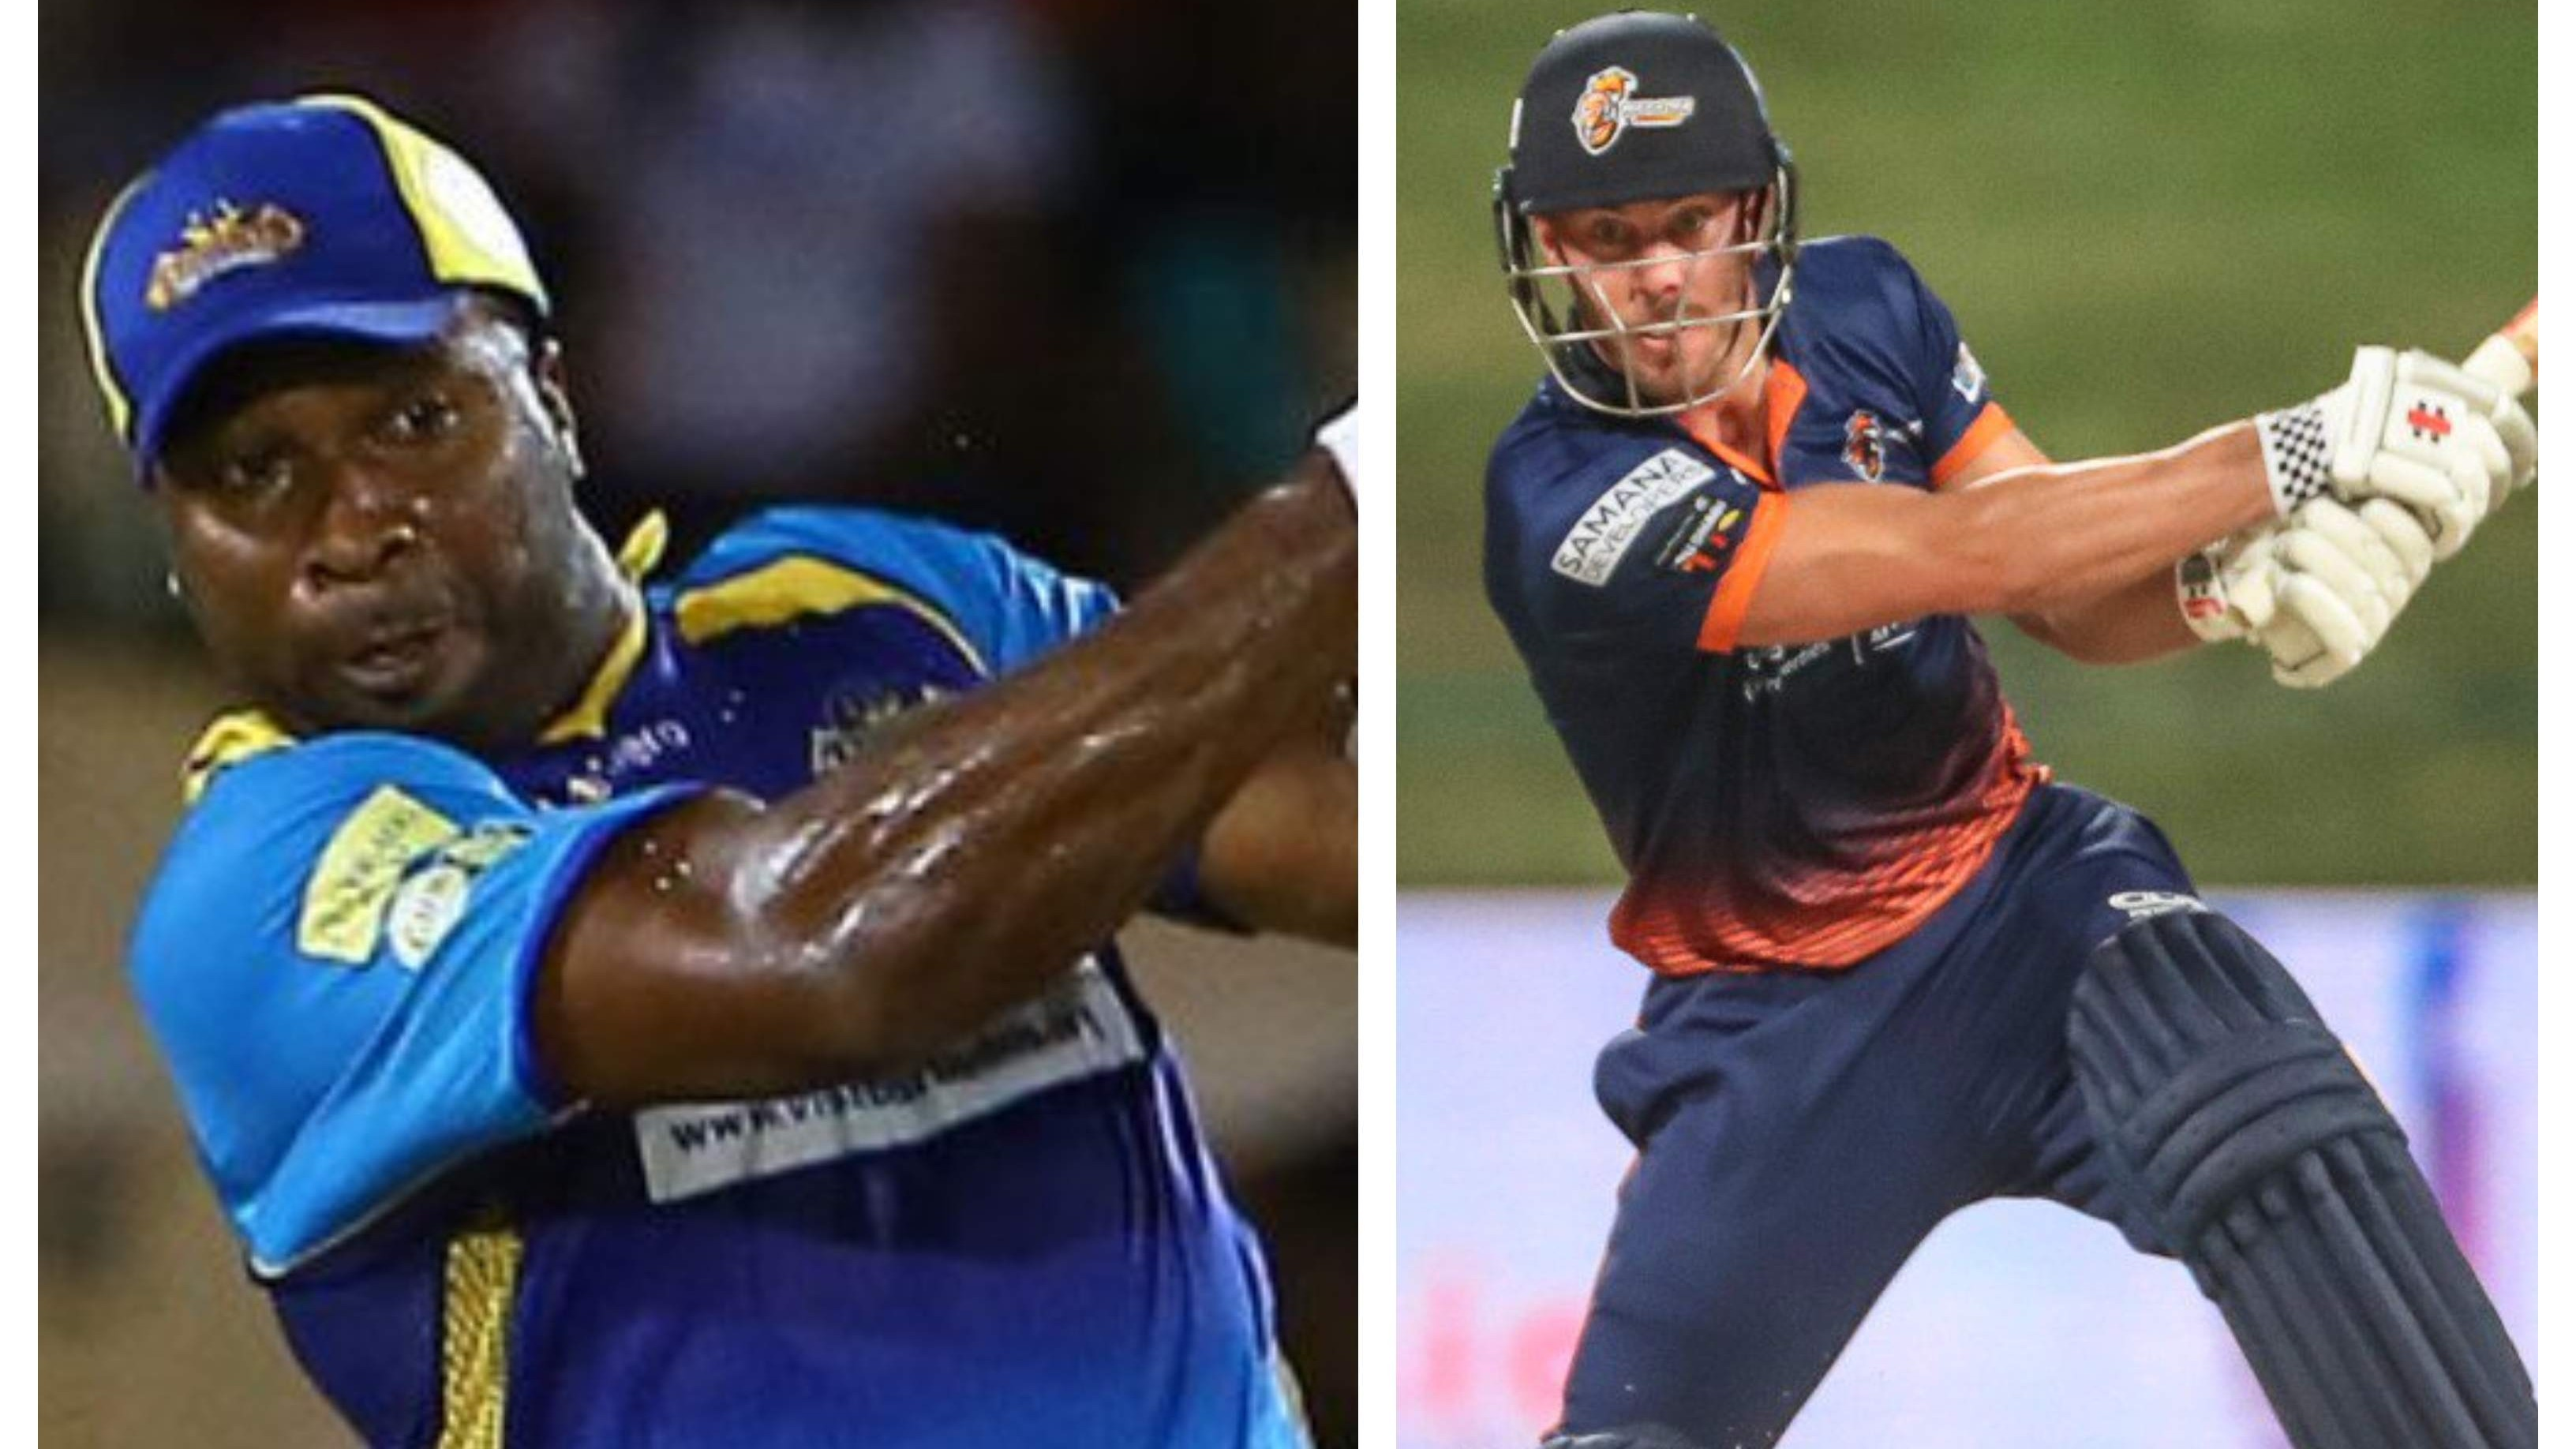 T10 League 2019: Pollard's blitz ensures Gladiators' win over Tuskers; Lynn's tornado blows away Team Abu Dhabi